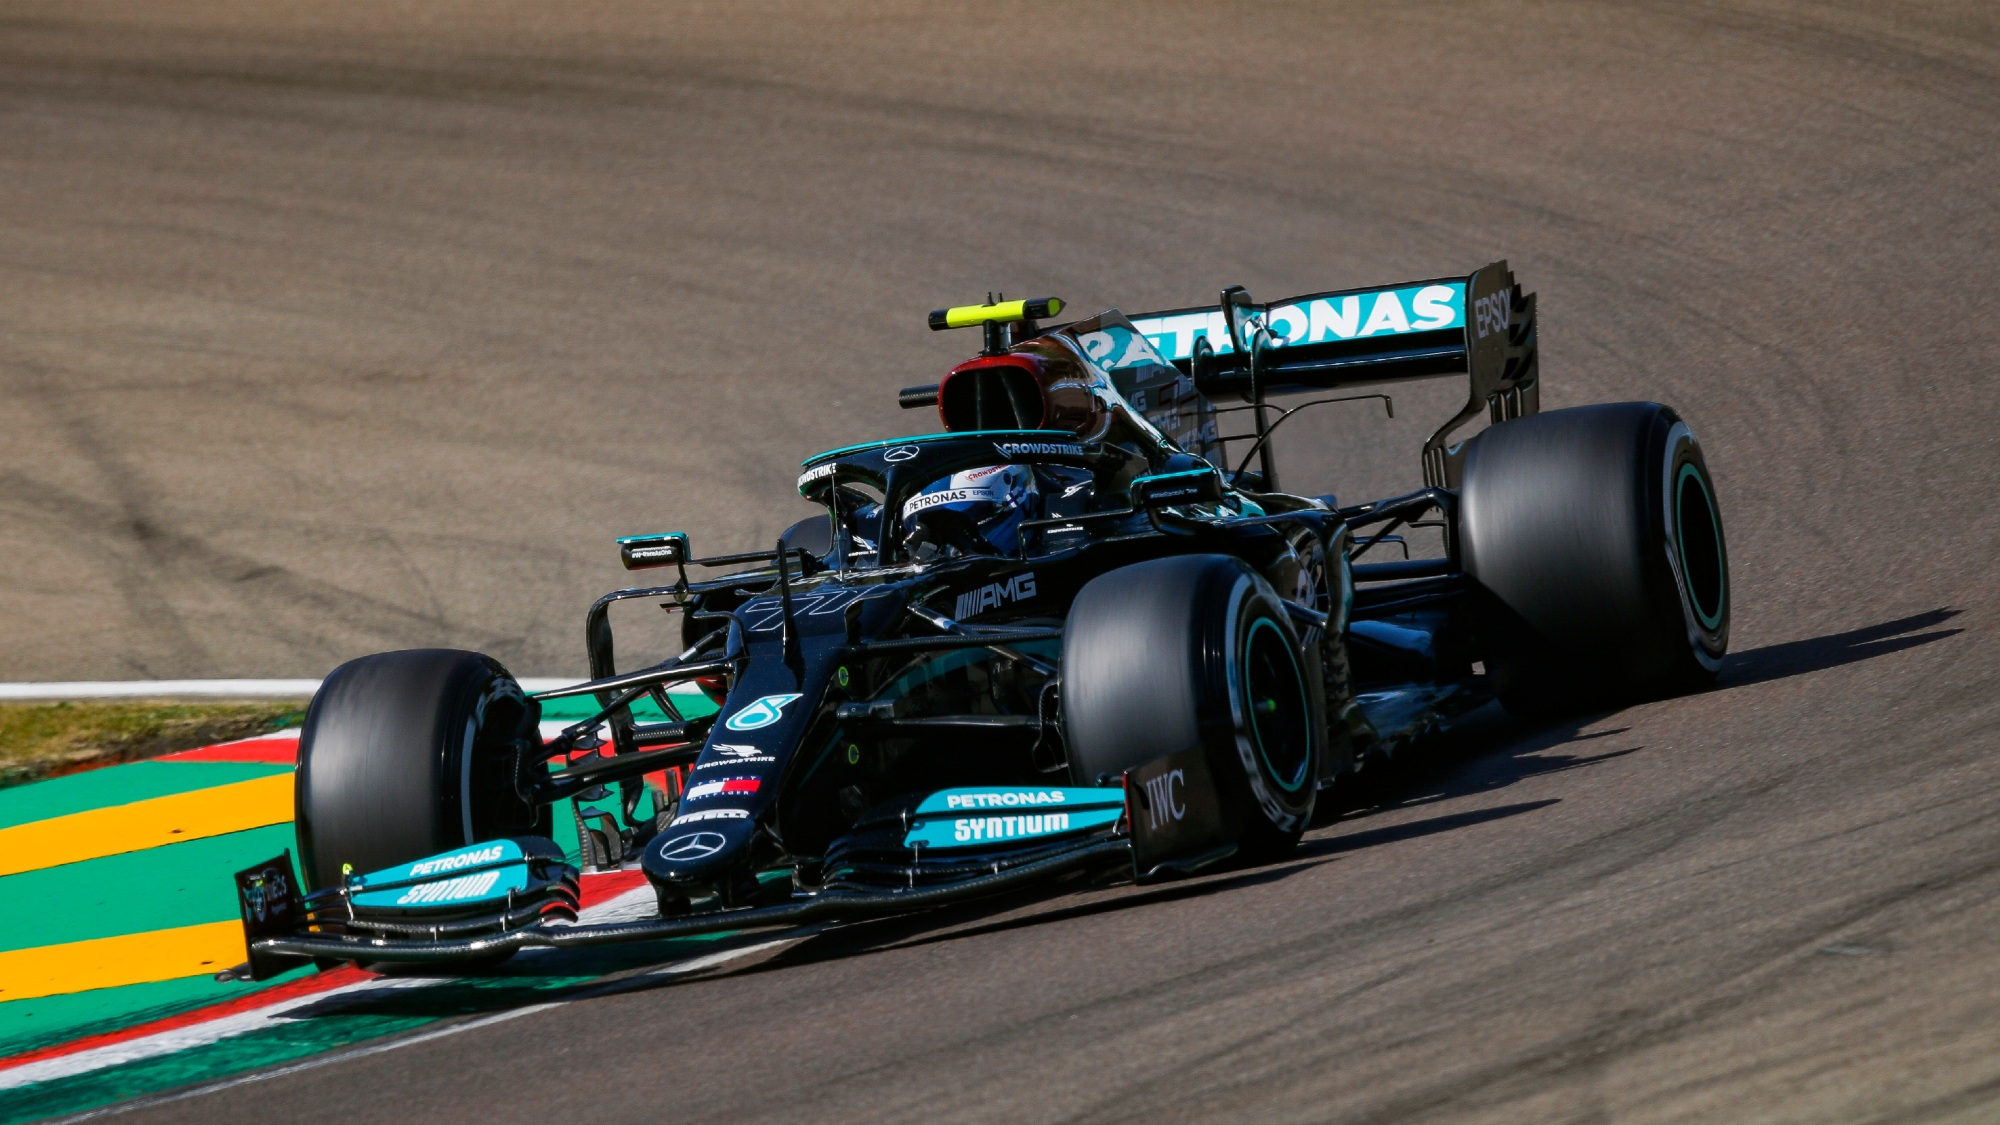 2021 Emilia Romagna Grand Prix practice round-up: Bottas narrowly ahead at Imola after FP1